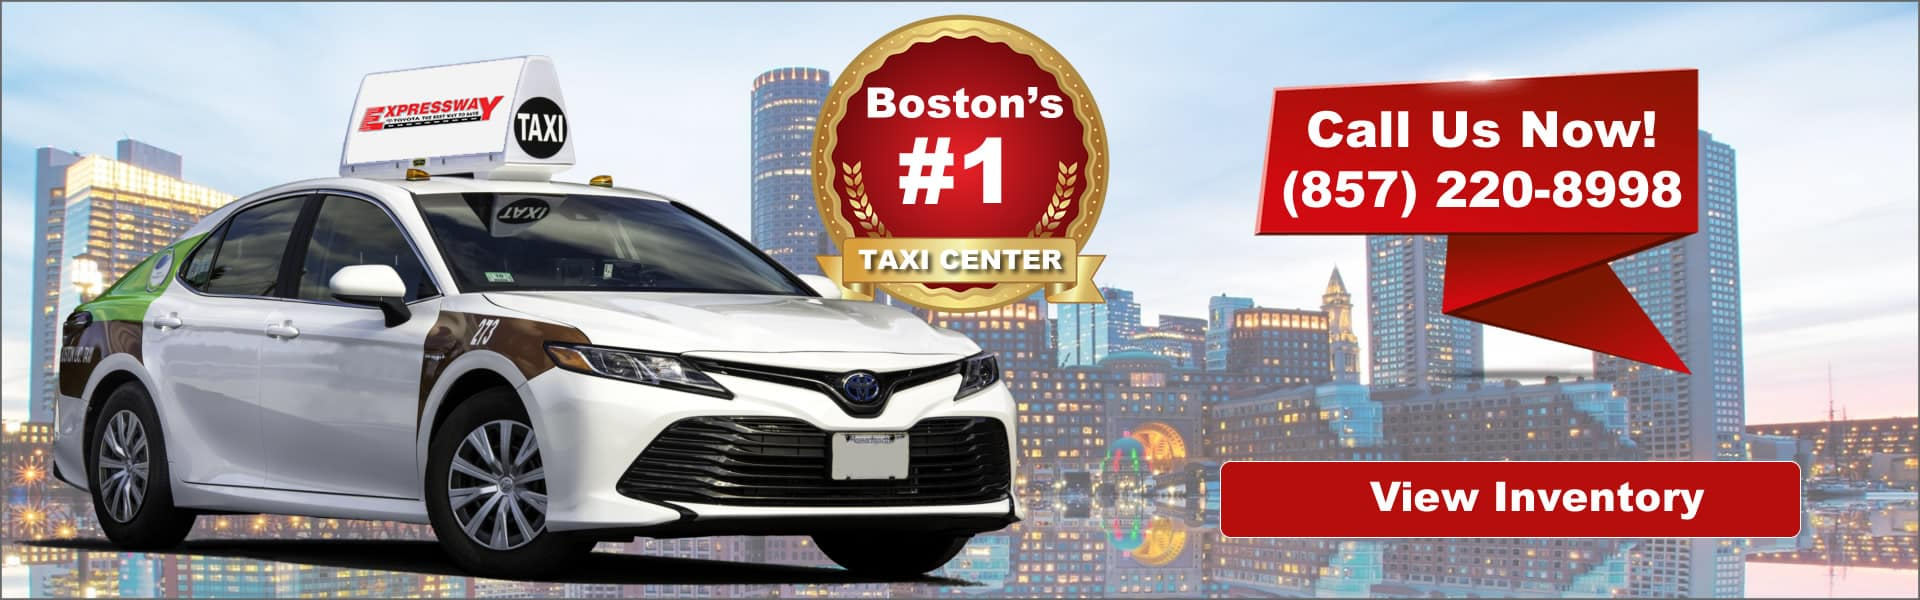 Toyota Dealerships Near Me >> Boston Toyota Dealer Expressway Toyota Serving Braintree Quincy Ma